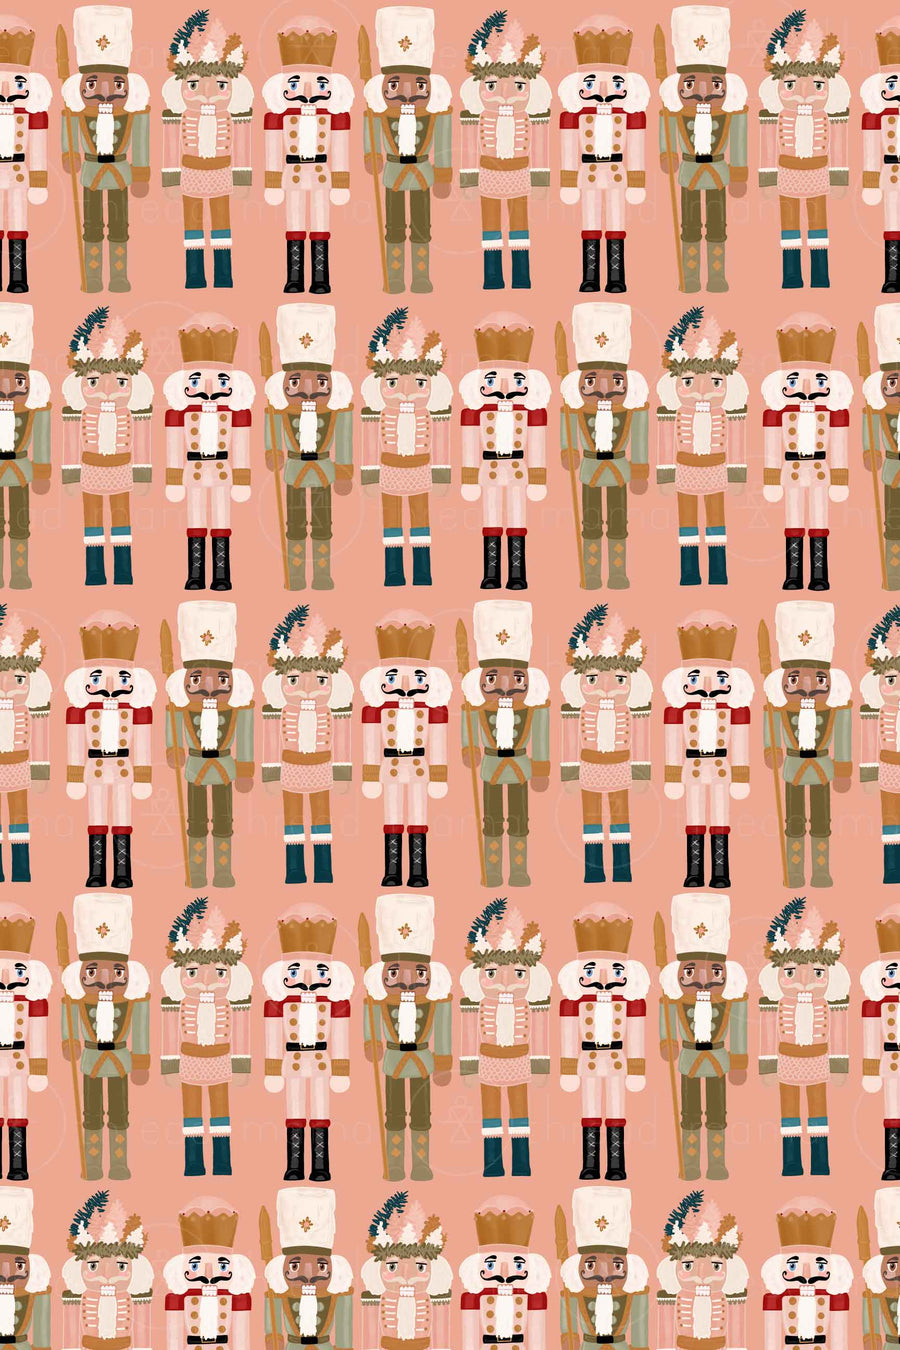 Background Pattern #25 (Printable Poster)